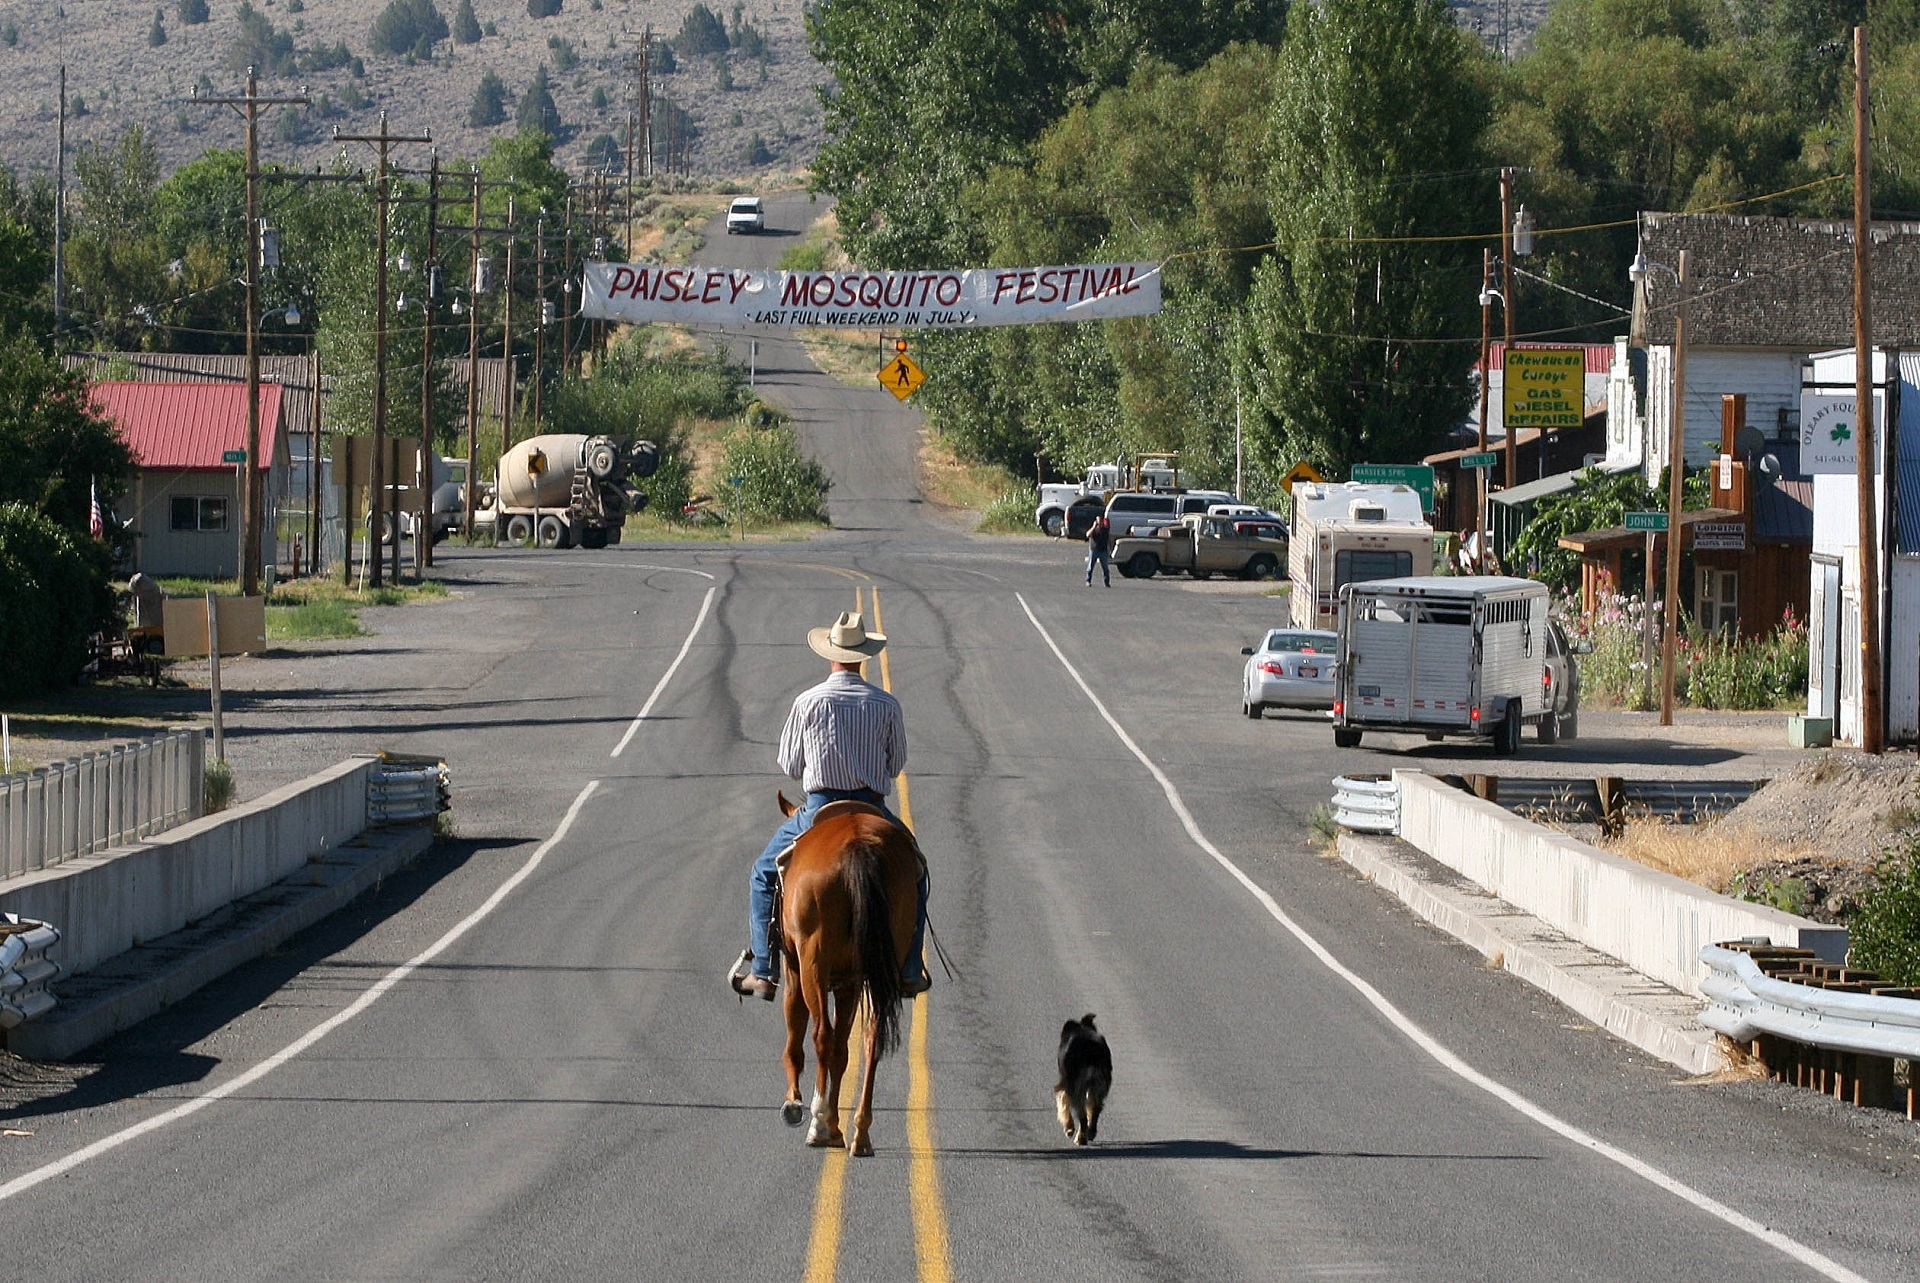 Cowboy on the road photo